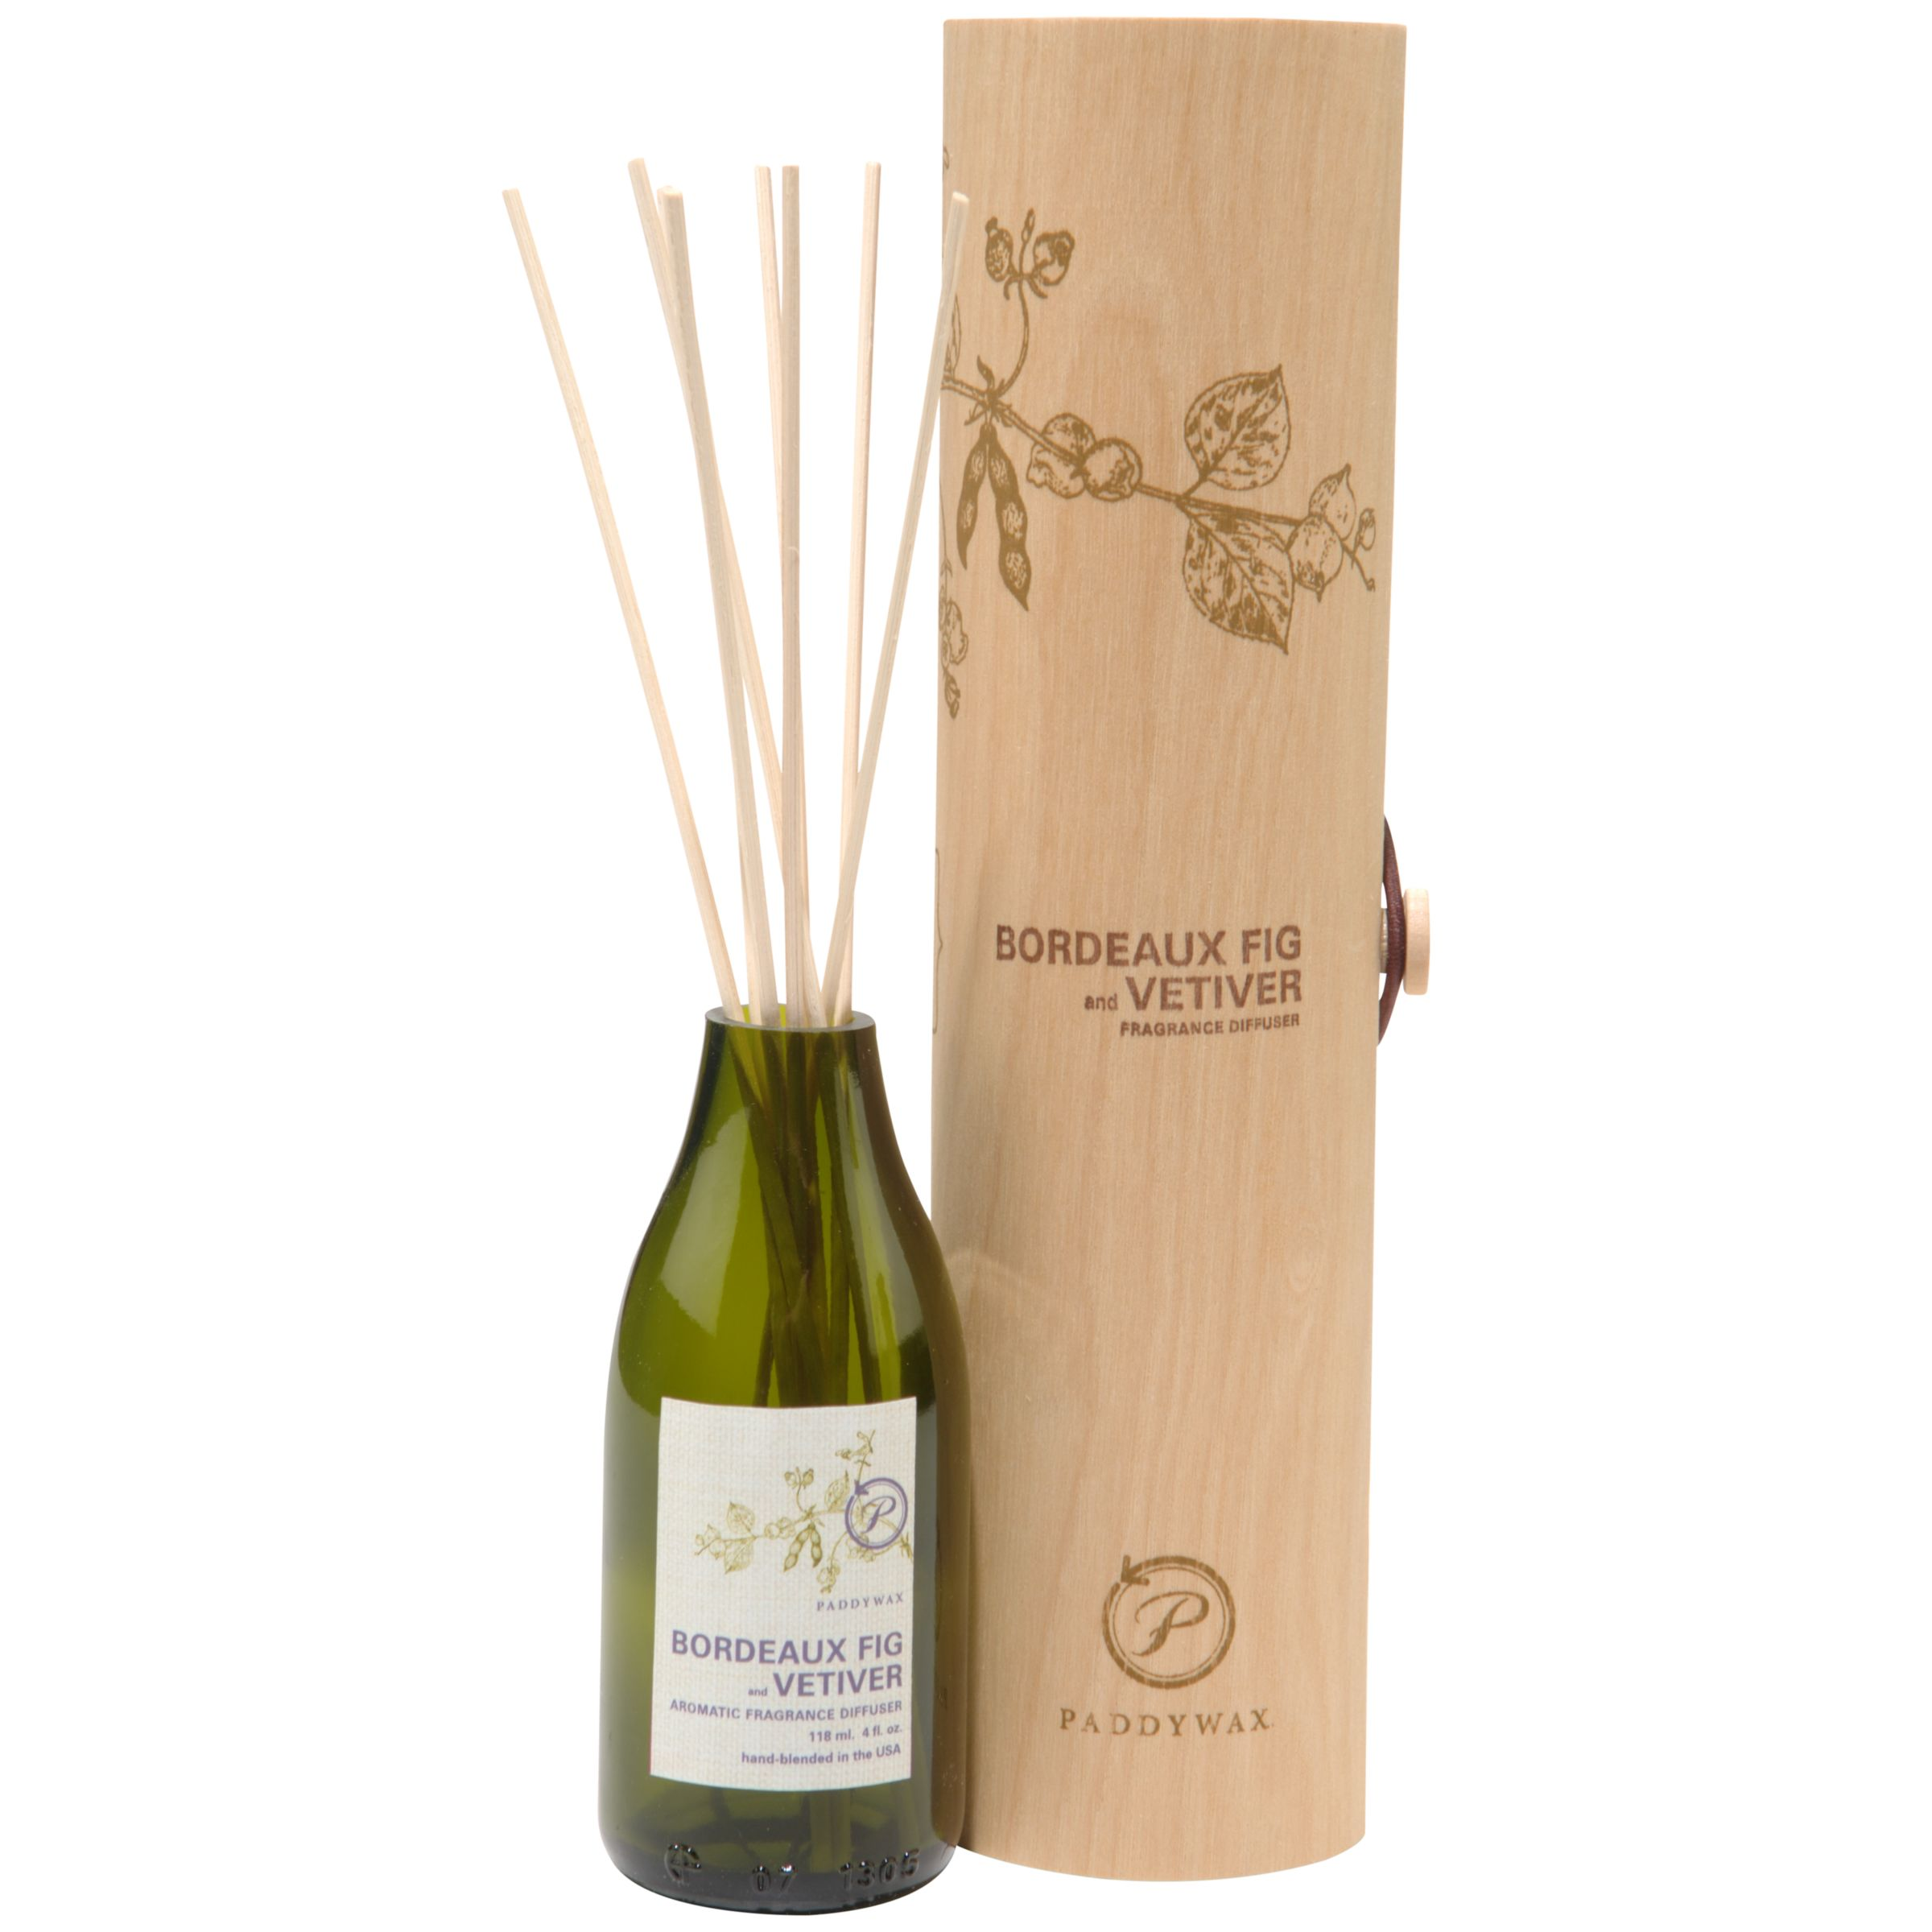 Paddywax Paddywax Ecogreen Bordeaux Fig and Vetiver Diffuser, 120ml